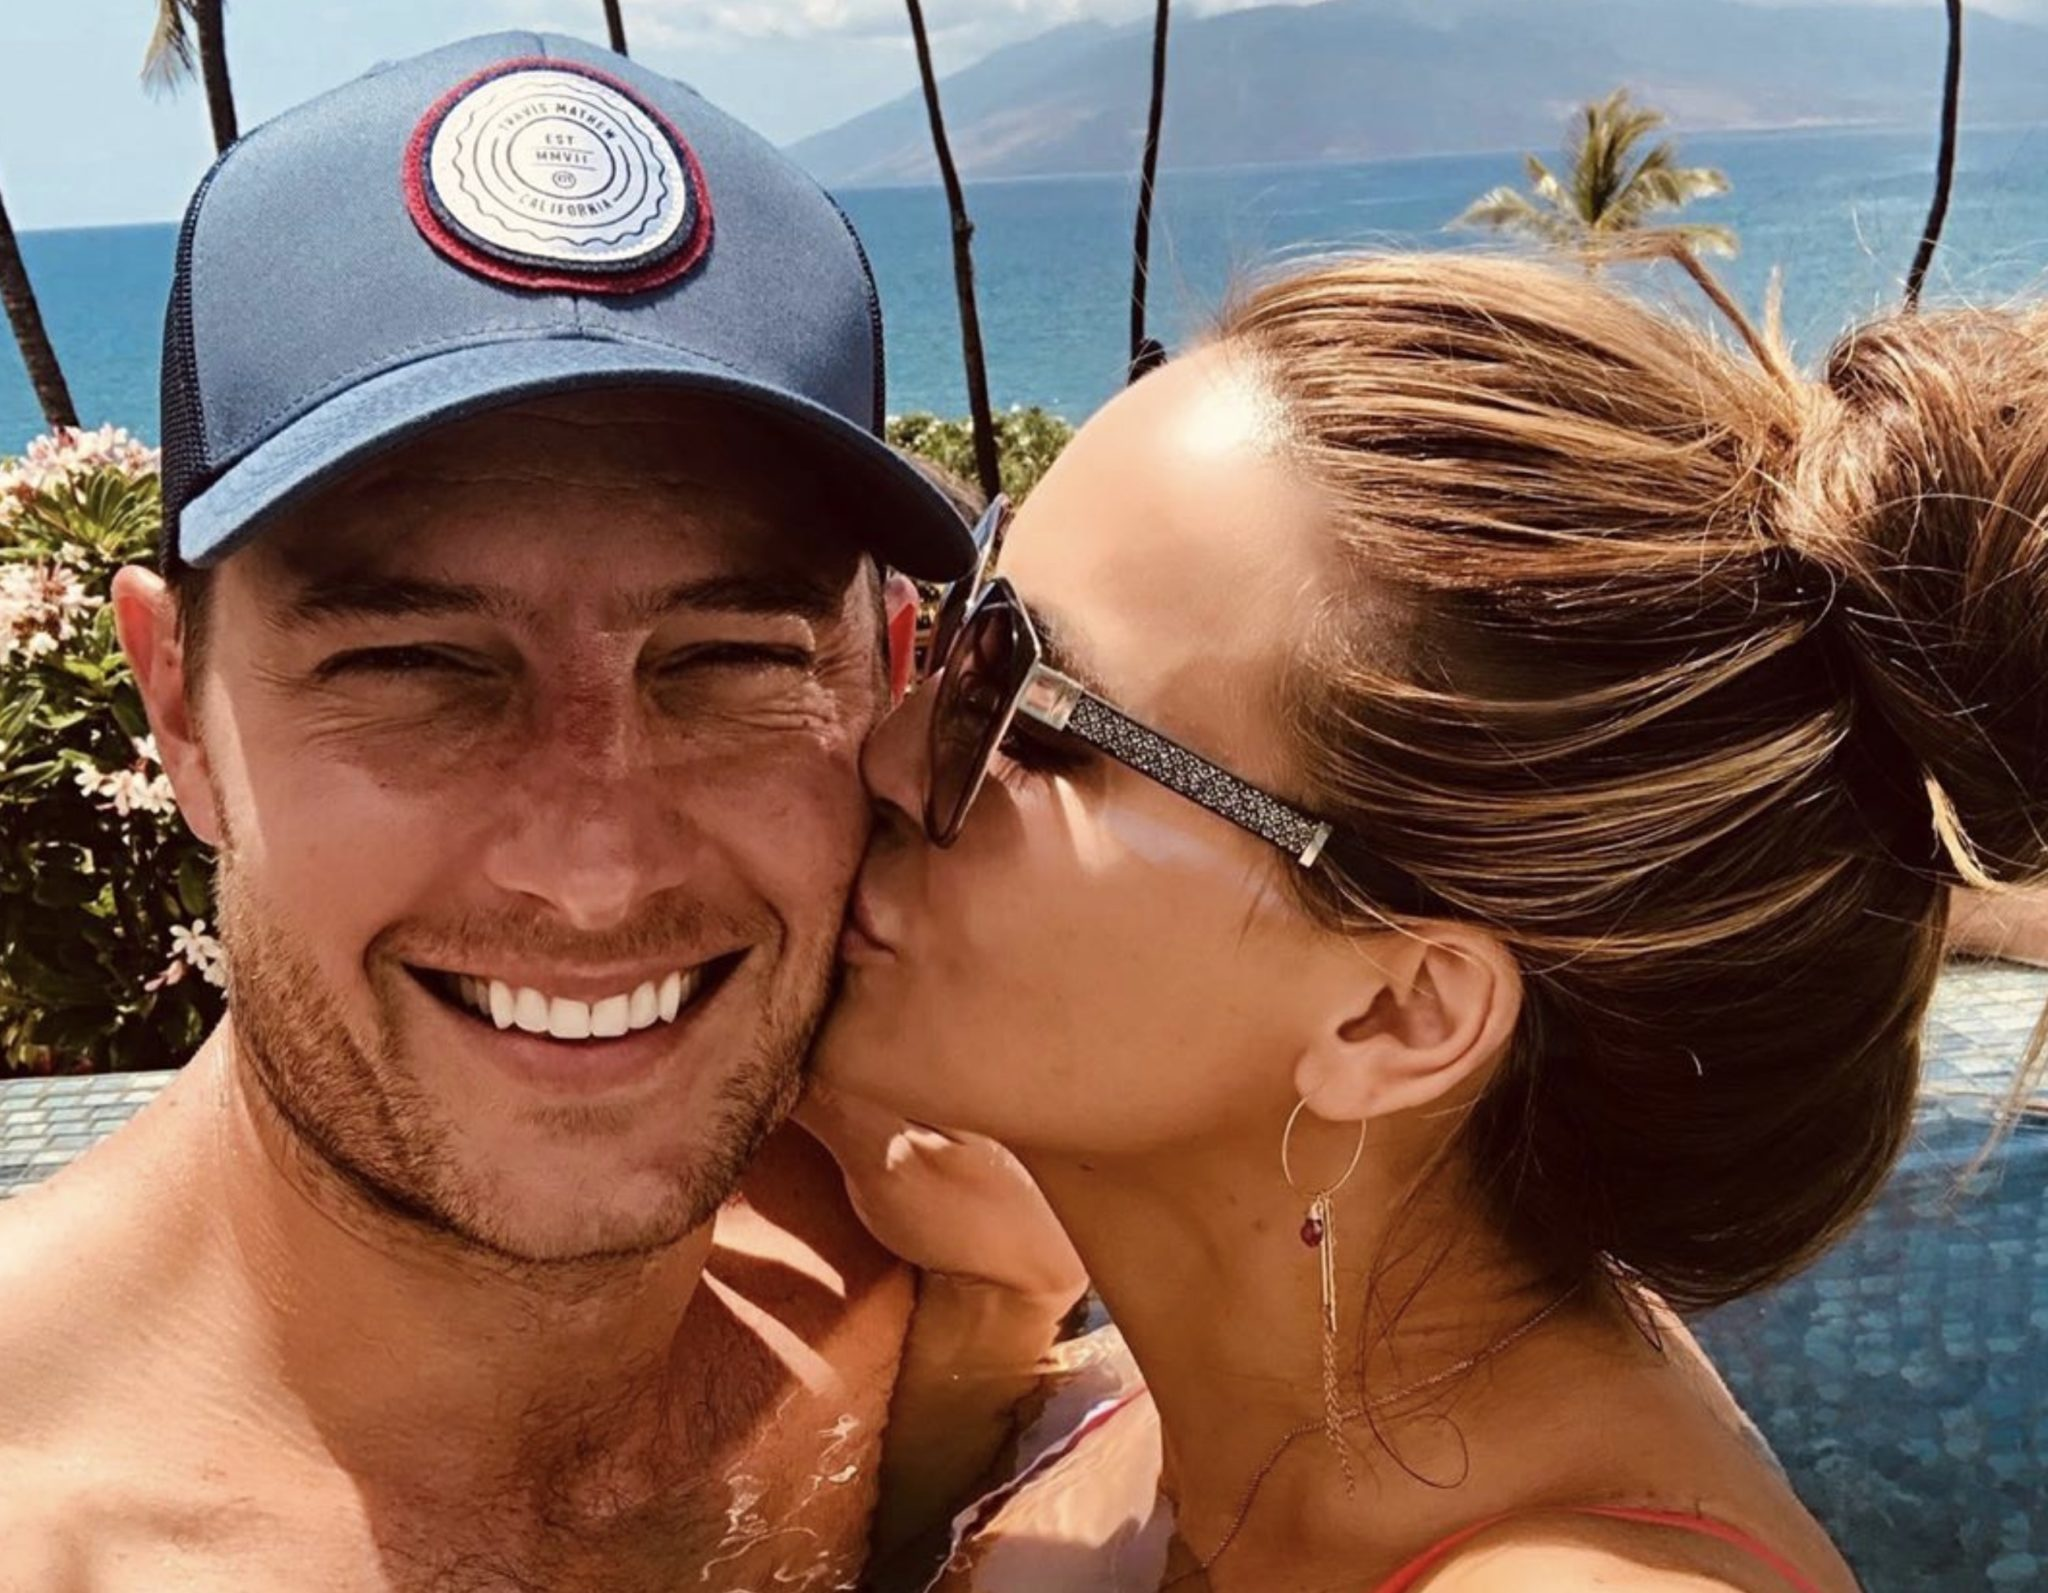 Justin Hartley, Chrishell Stause Hartley, This Is Us-https://www.instagram.com/p/By5pIwEnkxu/